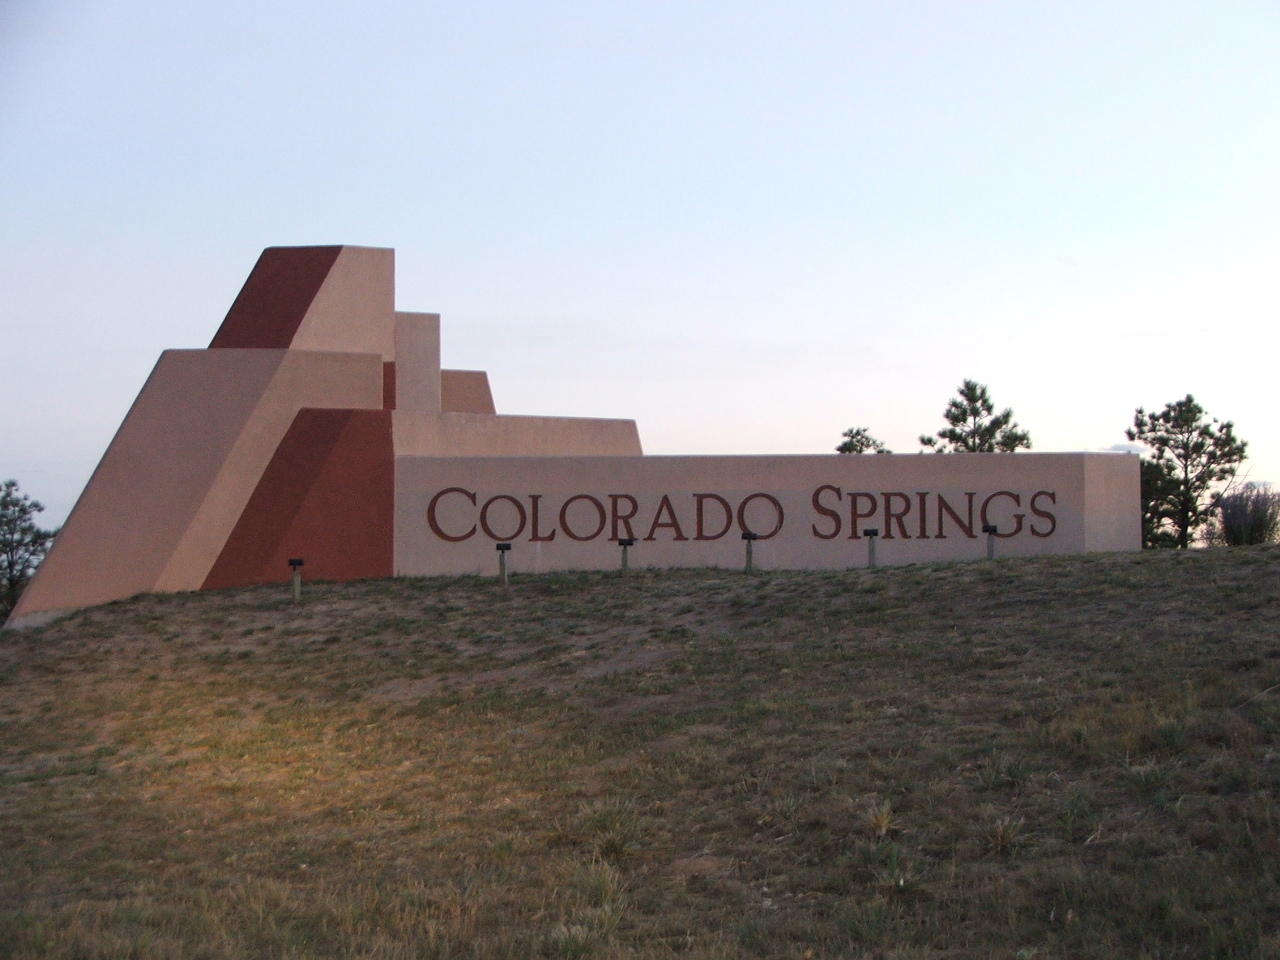 The Colorado Springs welcome sign just south of the N Gate Blvd exit on I-25 in Colorado Springs. File photo.